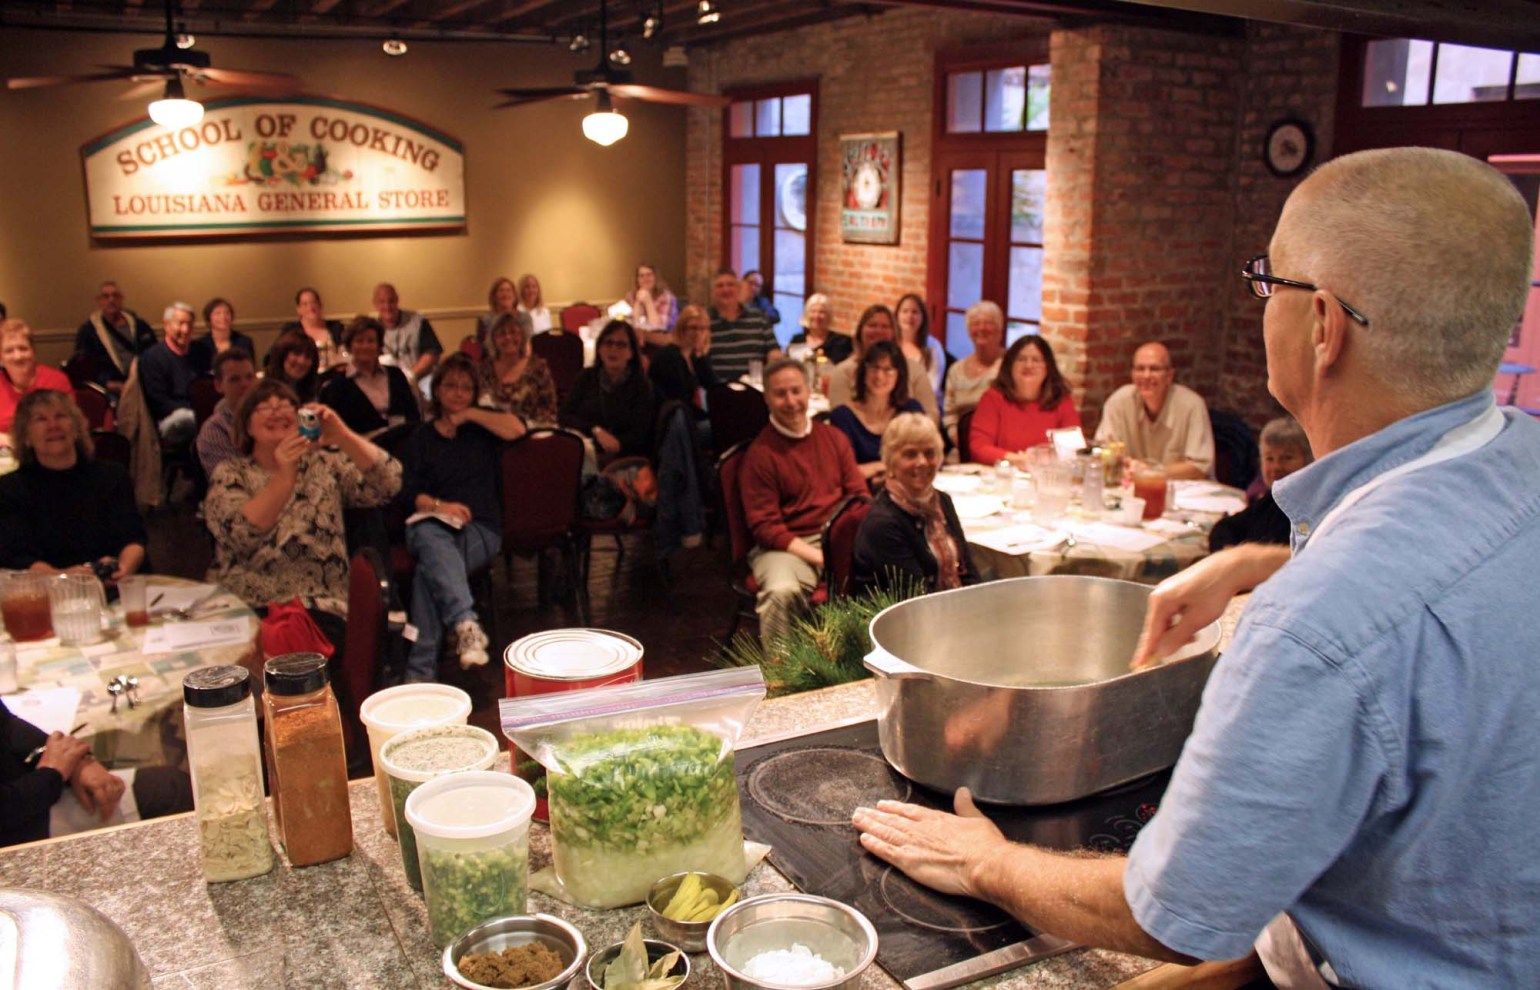 New Orleans School of Cooking Demonstration, courtesy of New Orleans School of Cooking